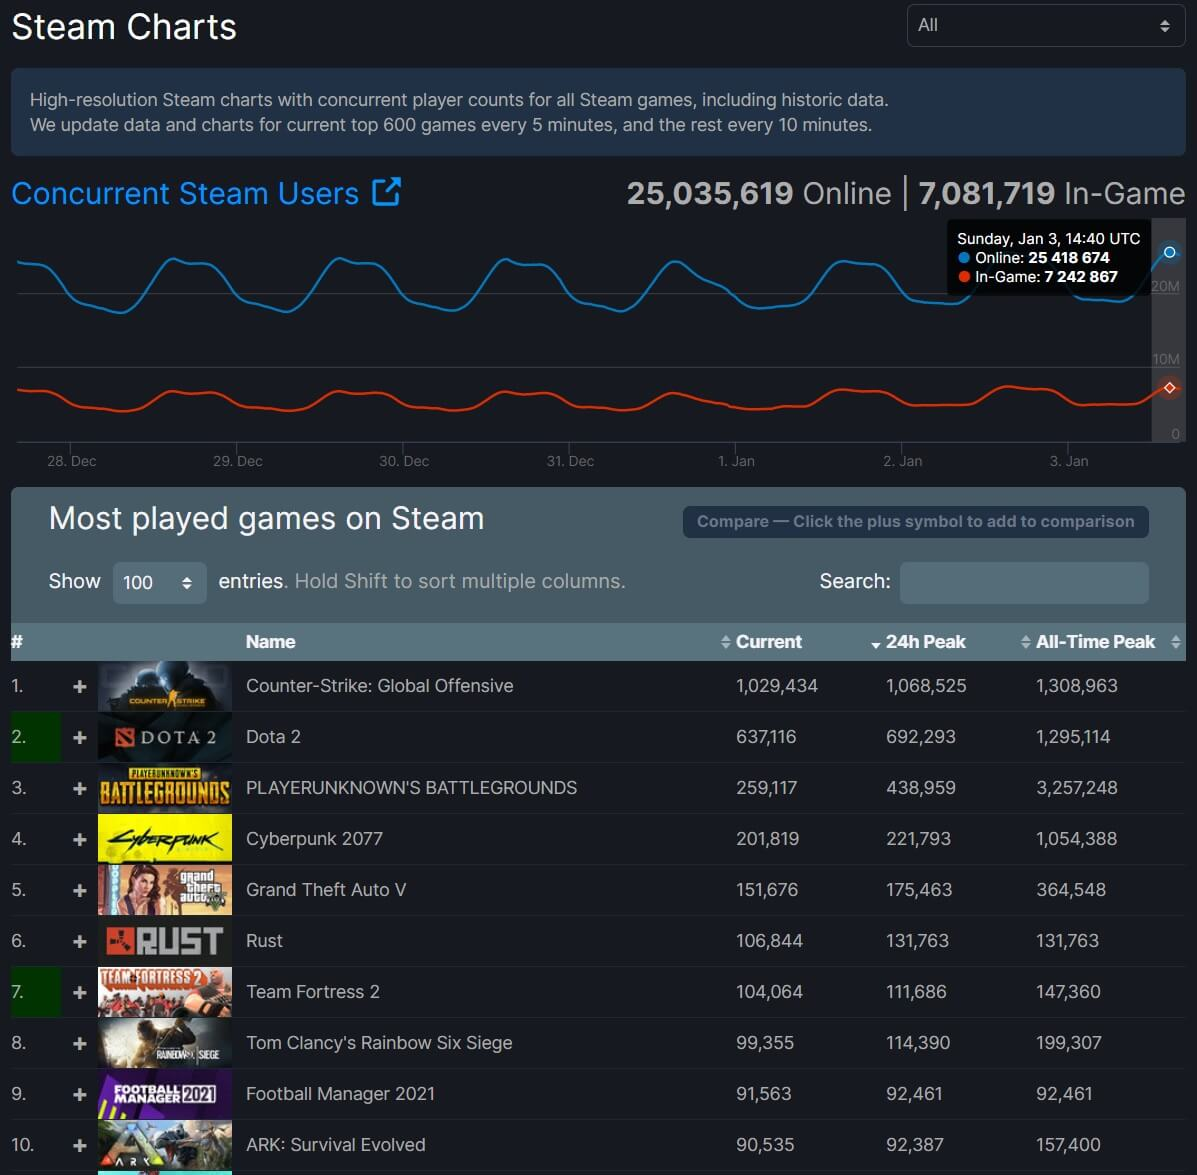 Steam 25 million concurrent players